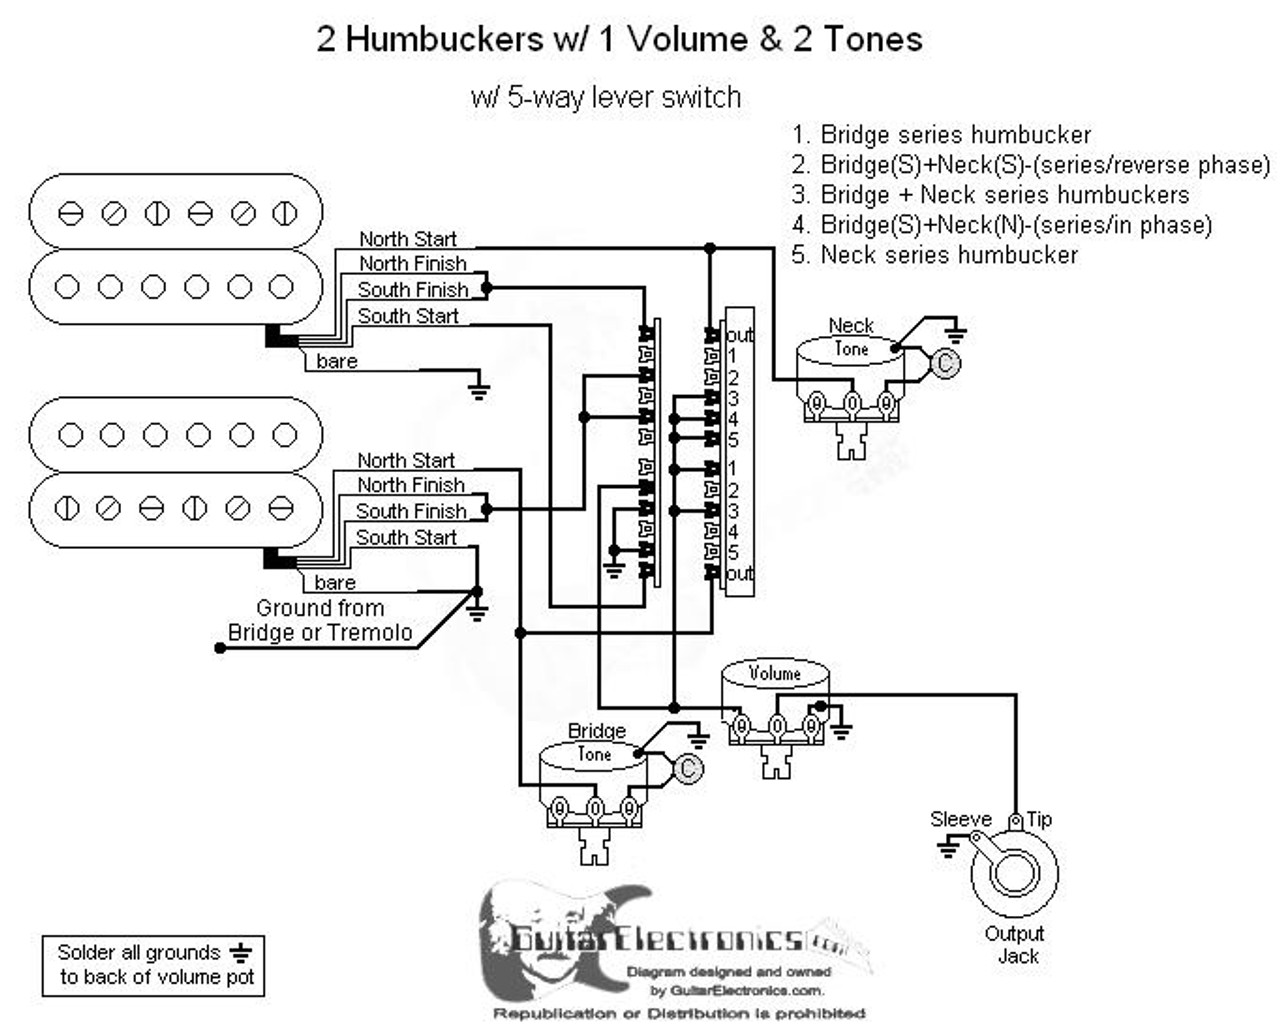 small resolution of fender wiring schematic 2 pickups 1 volume 2 tone 5 way switch 2 humbuckers 5 way lever switch 1 volume 2 tone 03wd2hh5l12 03 46181 1470694495 jpg c